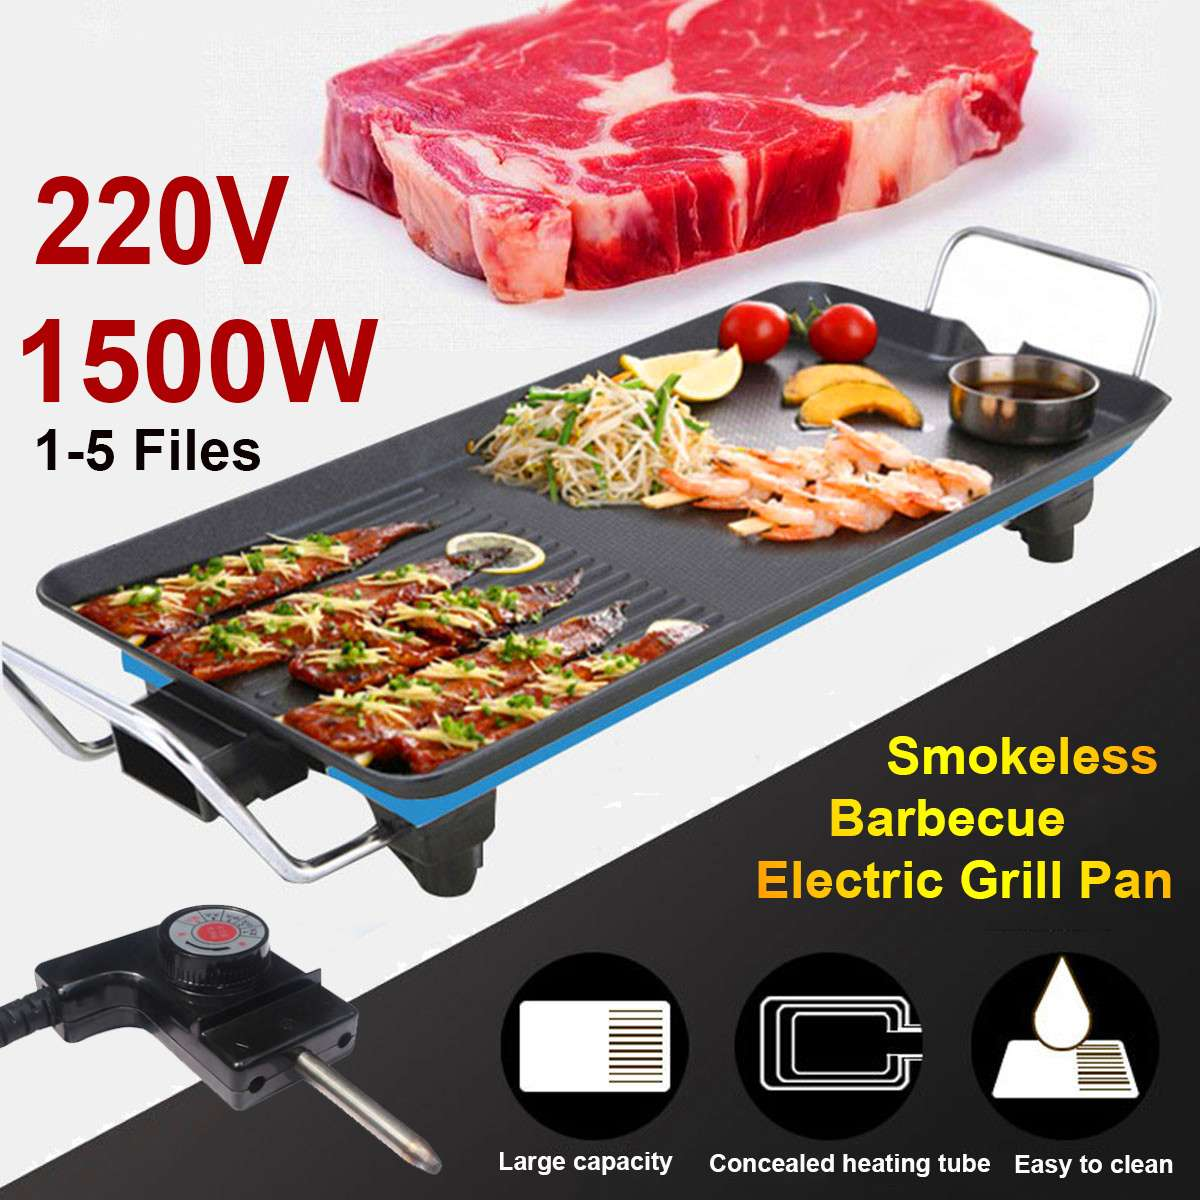 1500W 68cmx28cm Household Electric BBQ Grill Smokeless Non-Stick Barbecue Grilled Meat Pan Electric Baking Hotplate Teppanyaki